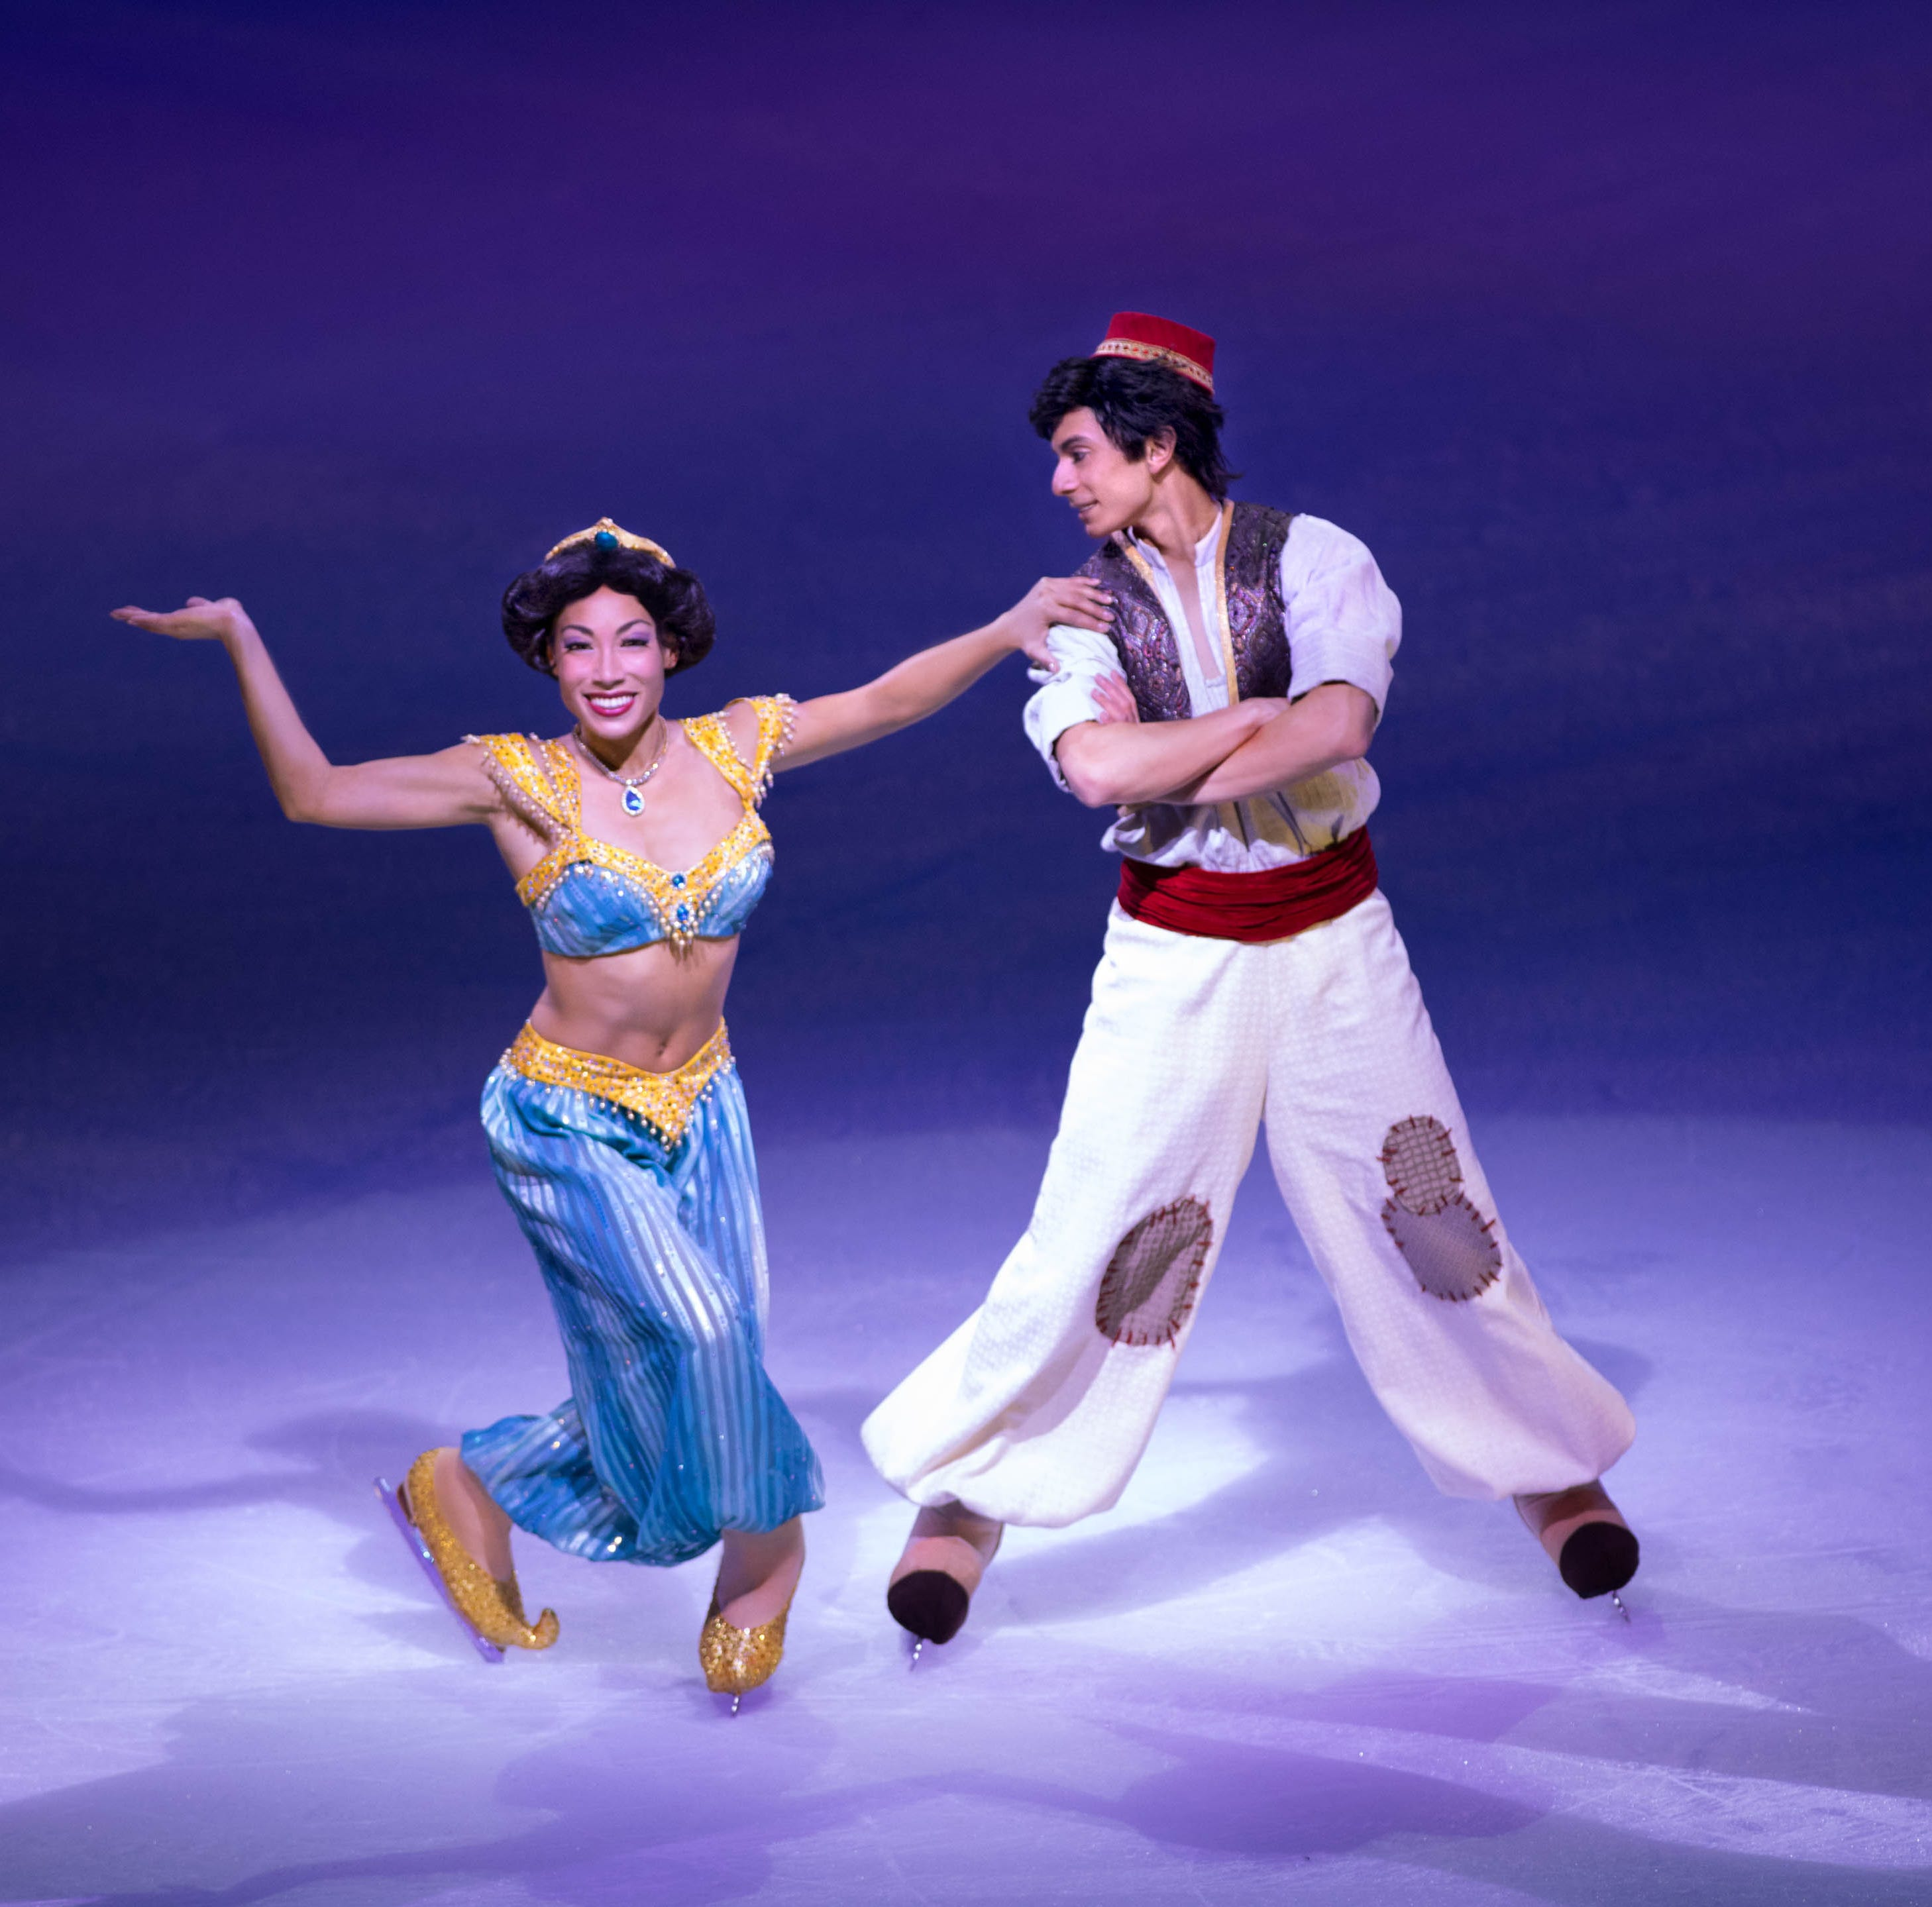 '100 Years of Magic': Disney on Ice comes to Premier Center to celebrate Walt Disney's legacy